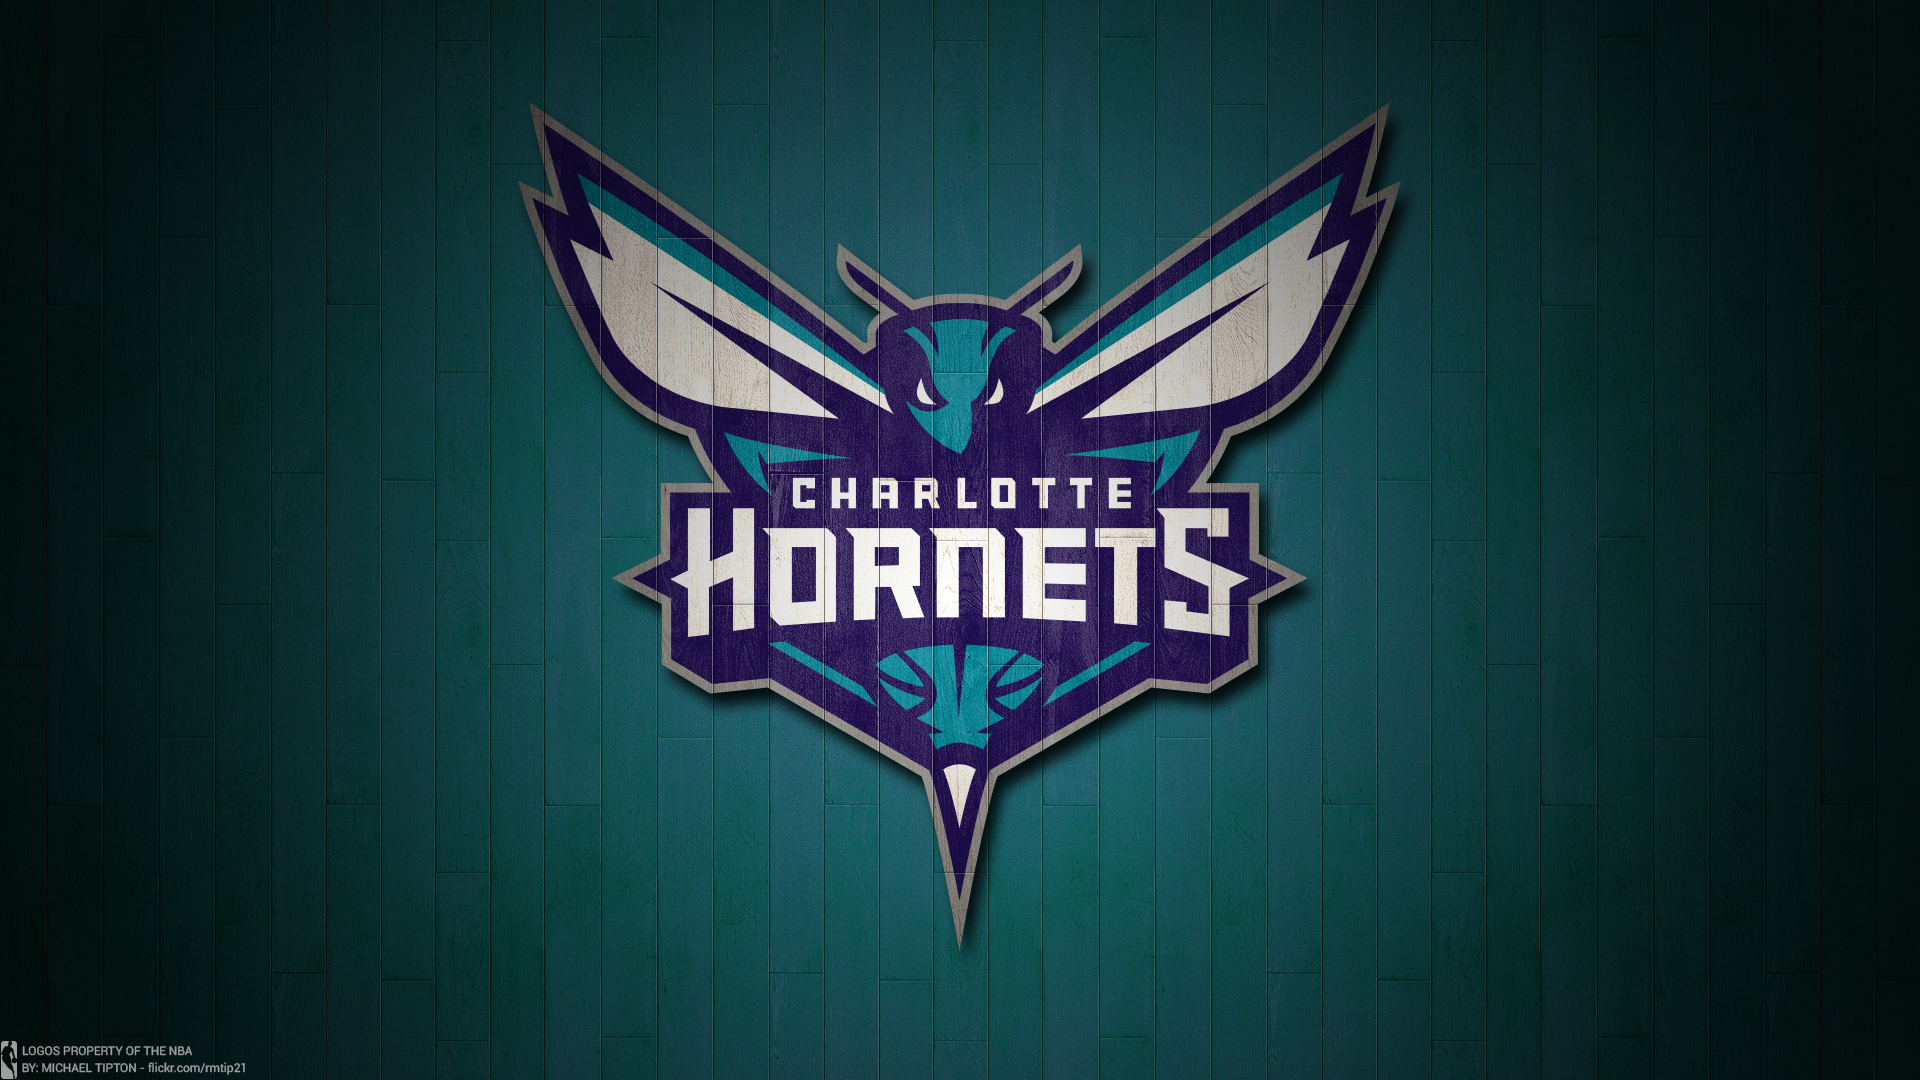 Charlotte Hornets Basketball Team HD Wallpaper